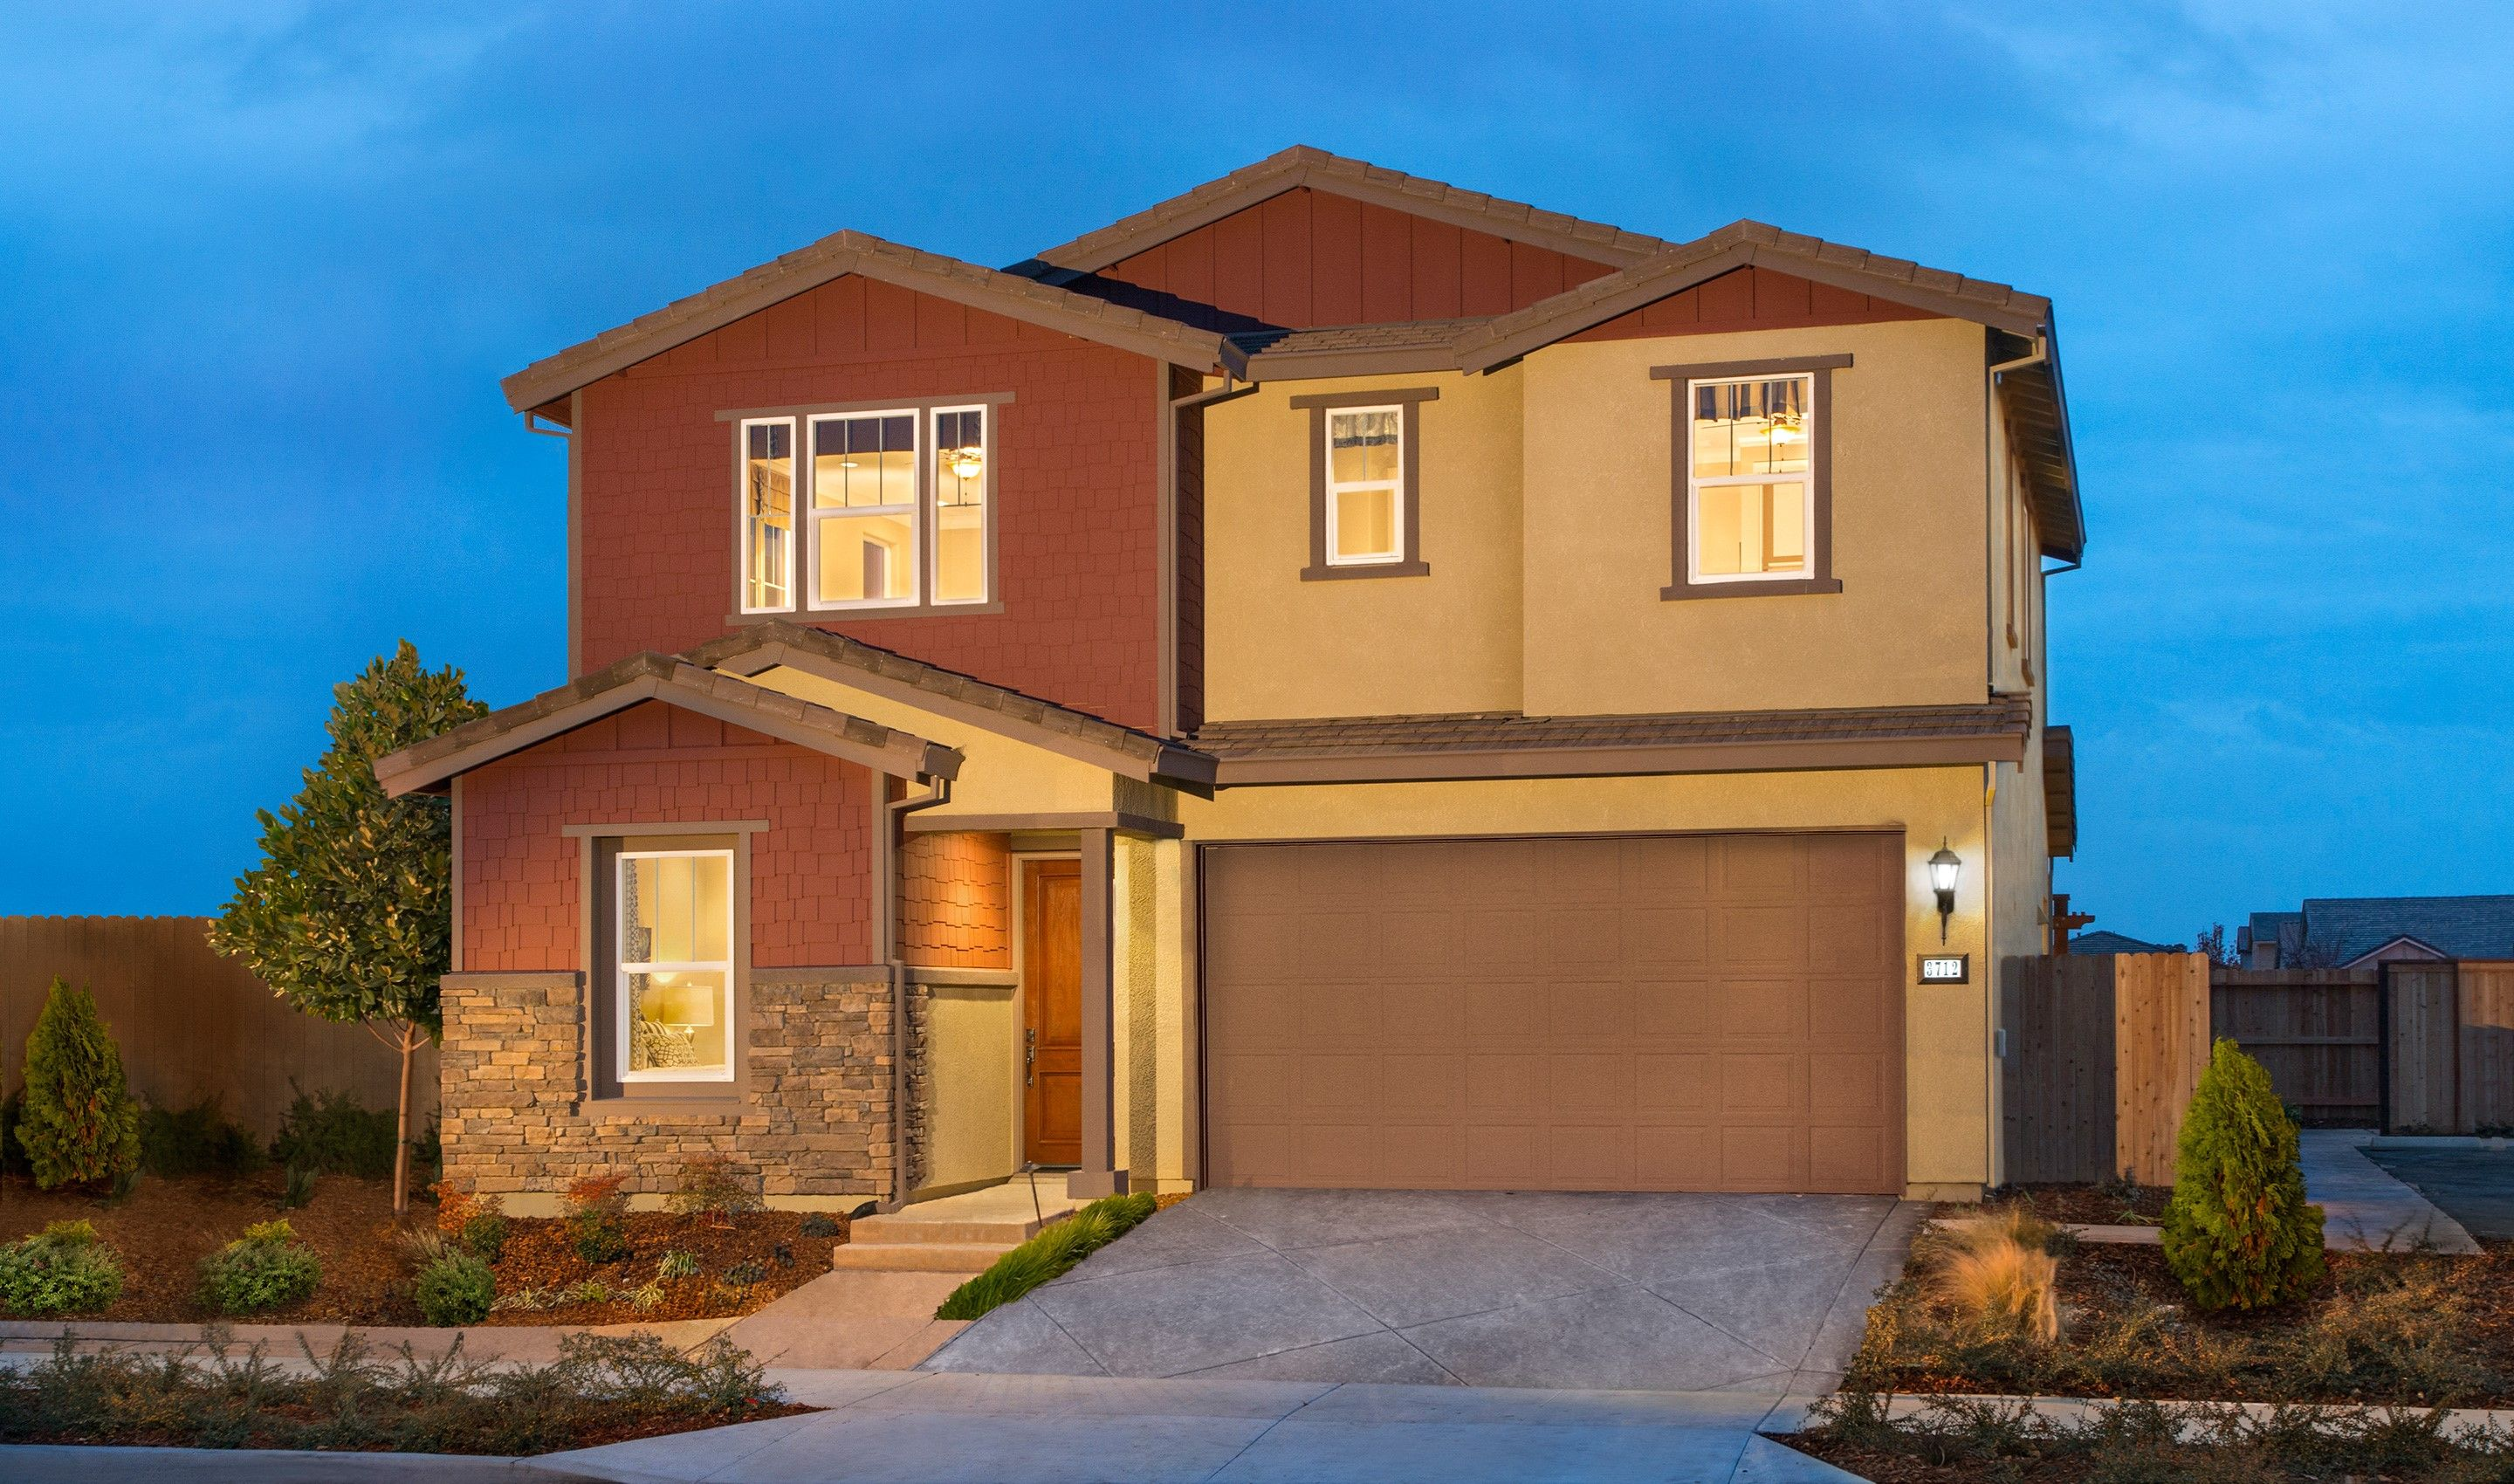 Single Family for Sale at Meadow 471 Cobalt Dr, Homesite 46 Hollister, California 95023 United States